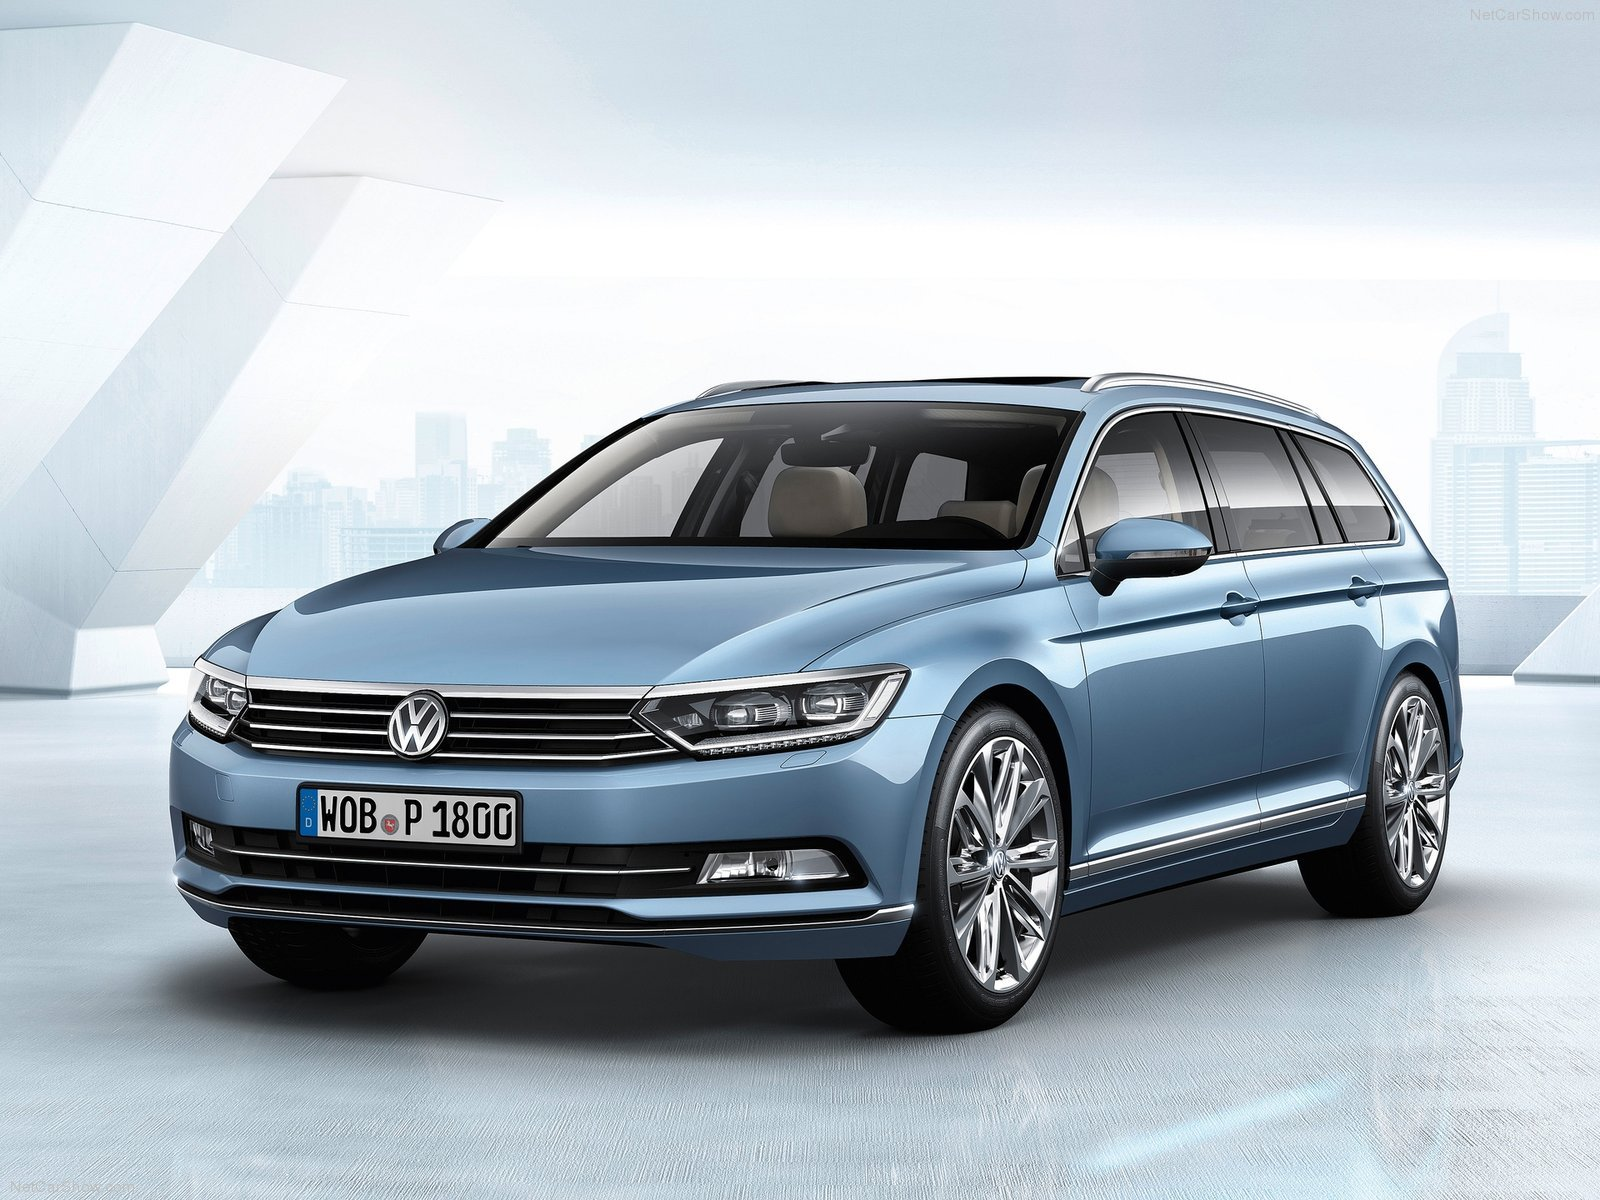 volkswagen passat variant 2014 wallpaper 1600x1200 385905 wallpaperup. Black Bedroom Furniture Sets. Home Design Ideas